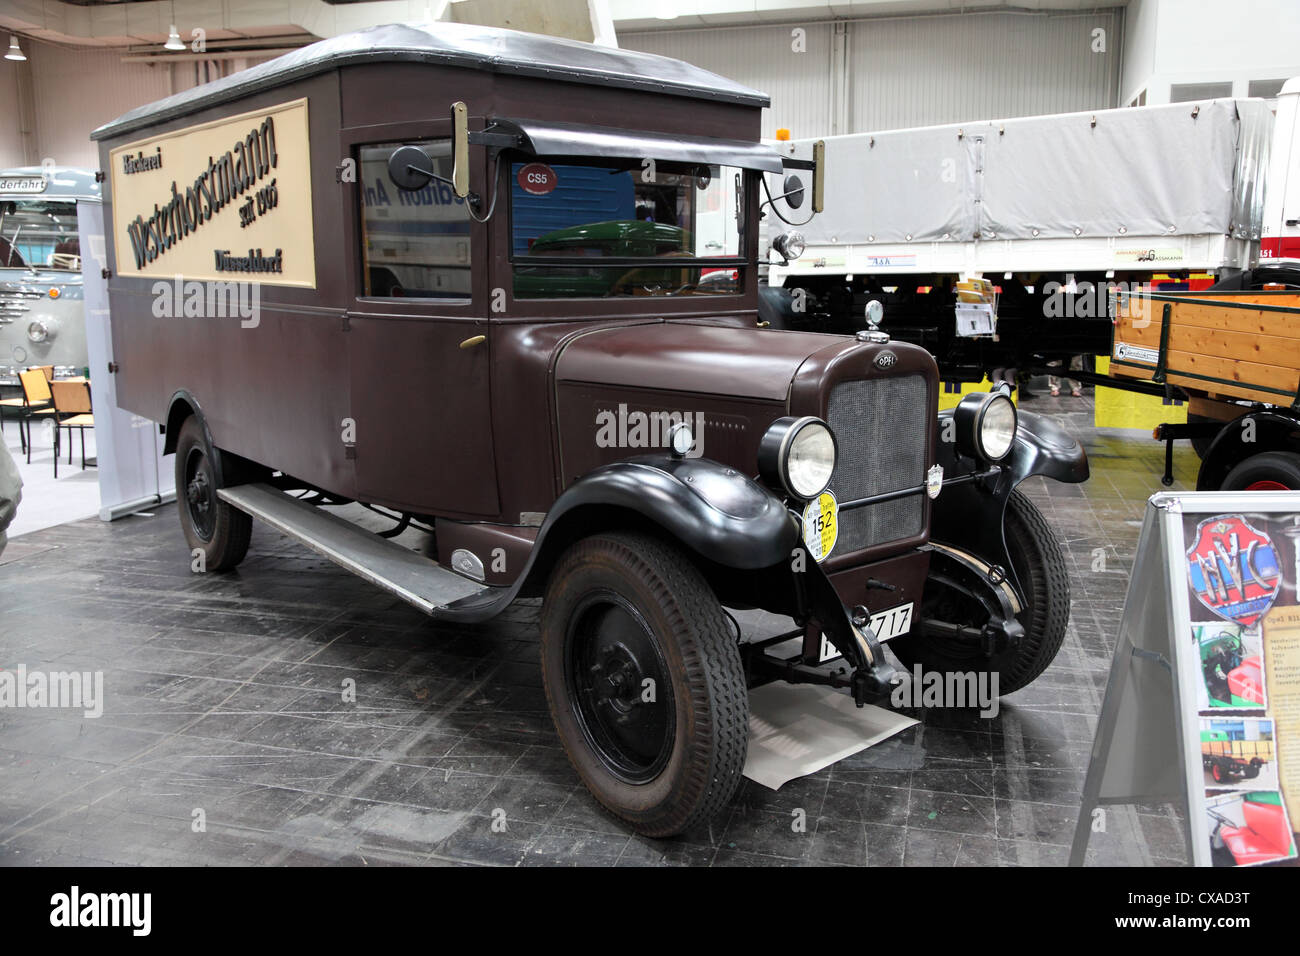 Opel Oldtimer Van at the International Motor Show for Commercial Vehicles - Stock Image